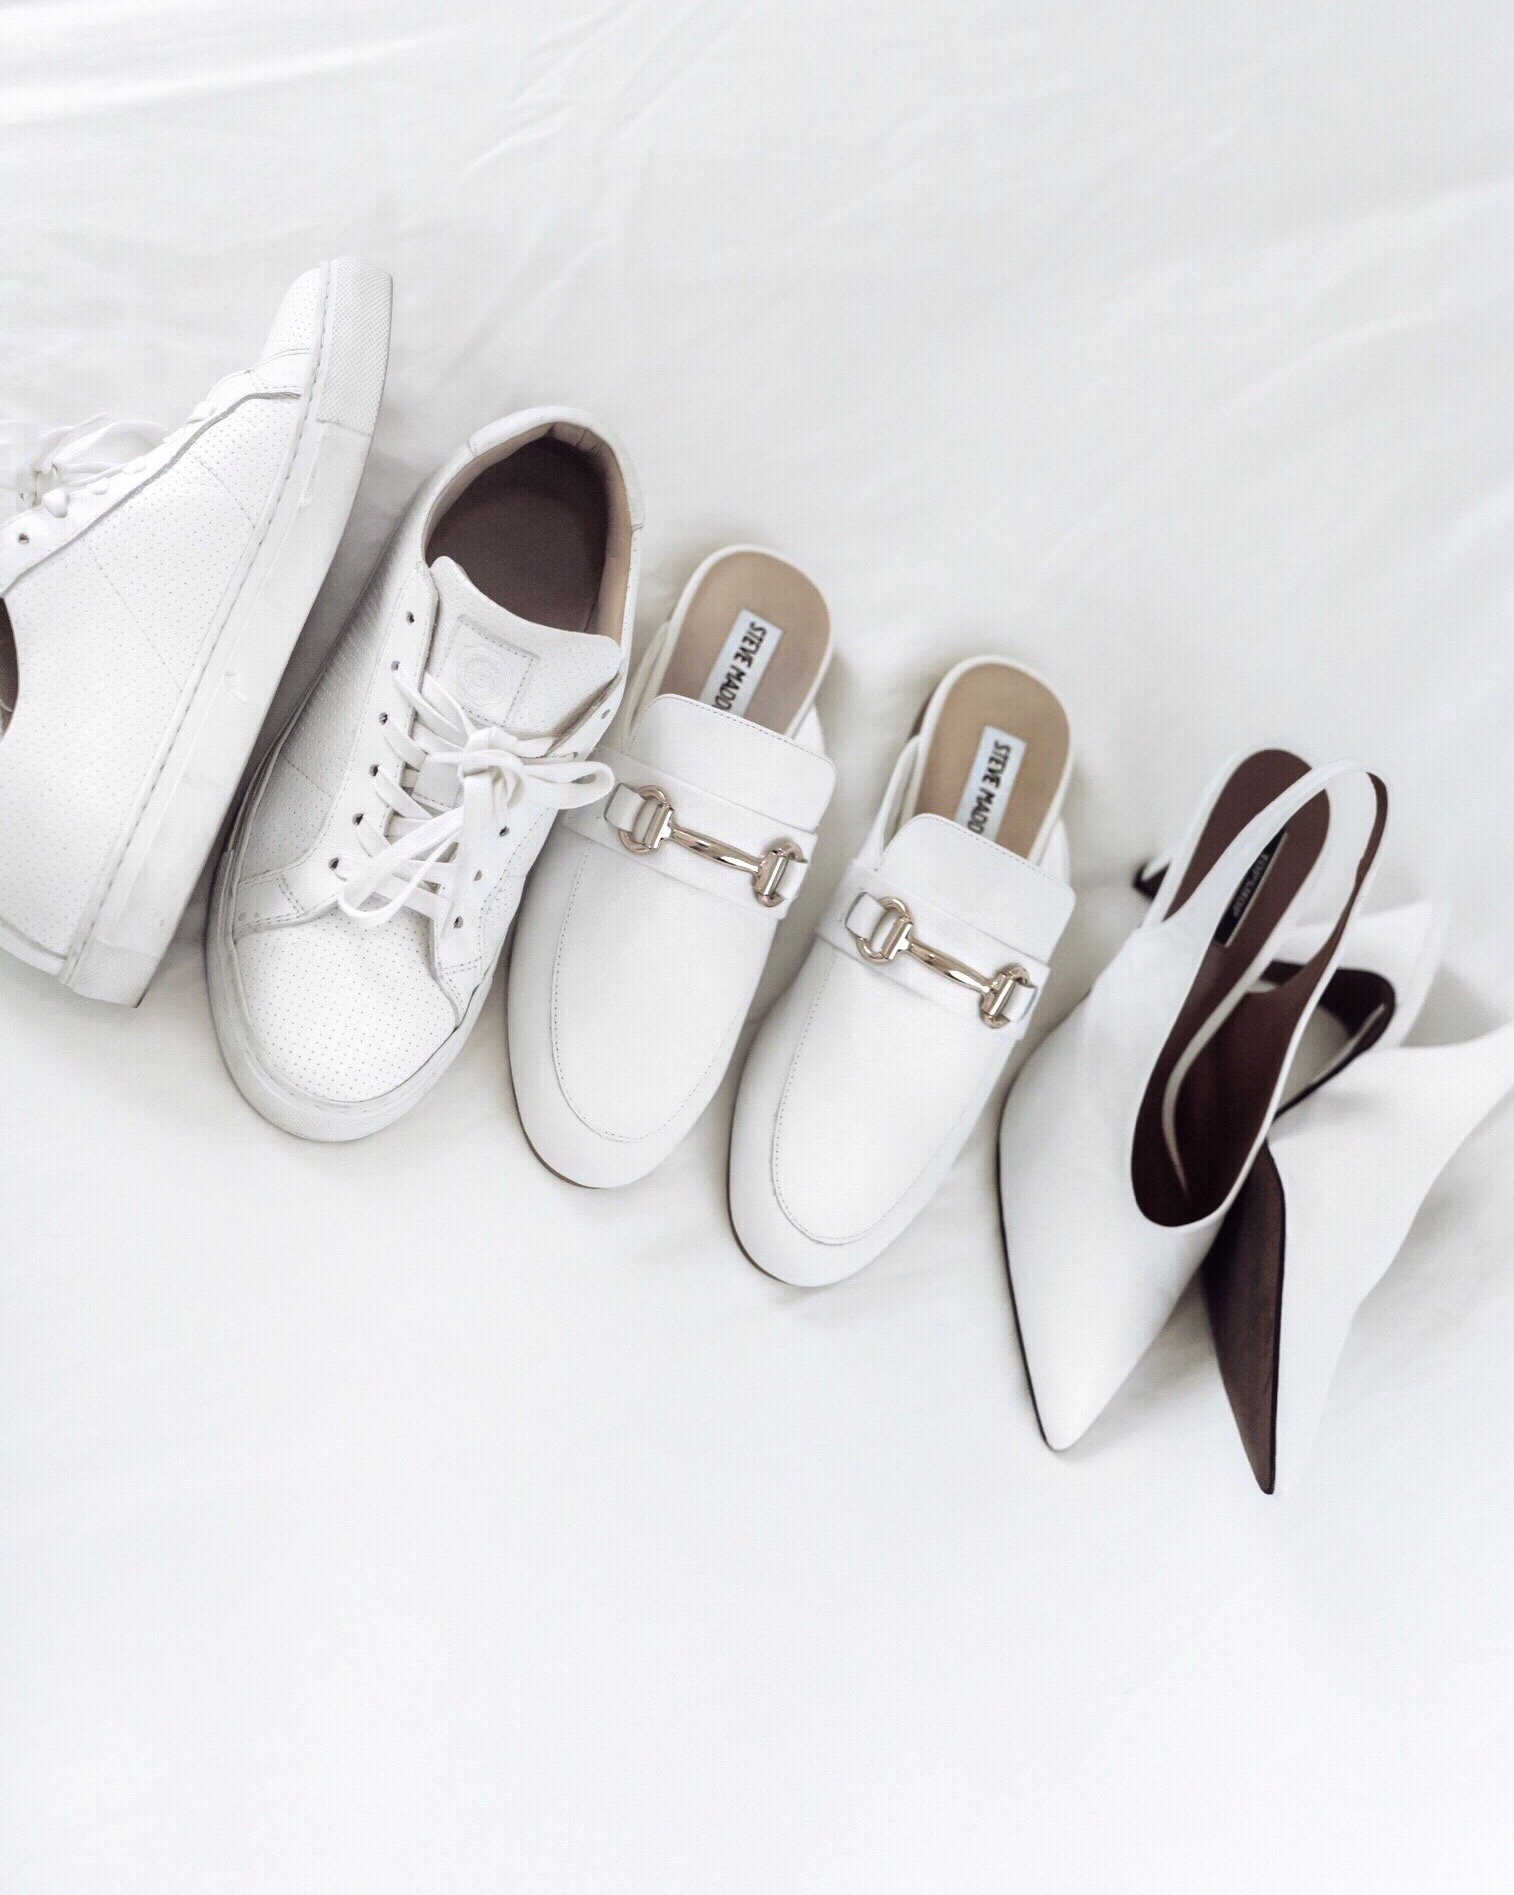 FRIDAY FEELS   shop the post  The white shoe obsession is real this year and it's such a huge trend right now. I prefer the classic styles that stay around like these white loafers by Steve Madden. I just got them in and I can't wait to style them with cozy sweaters and denim this fall!